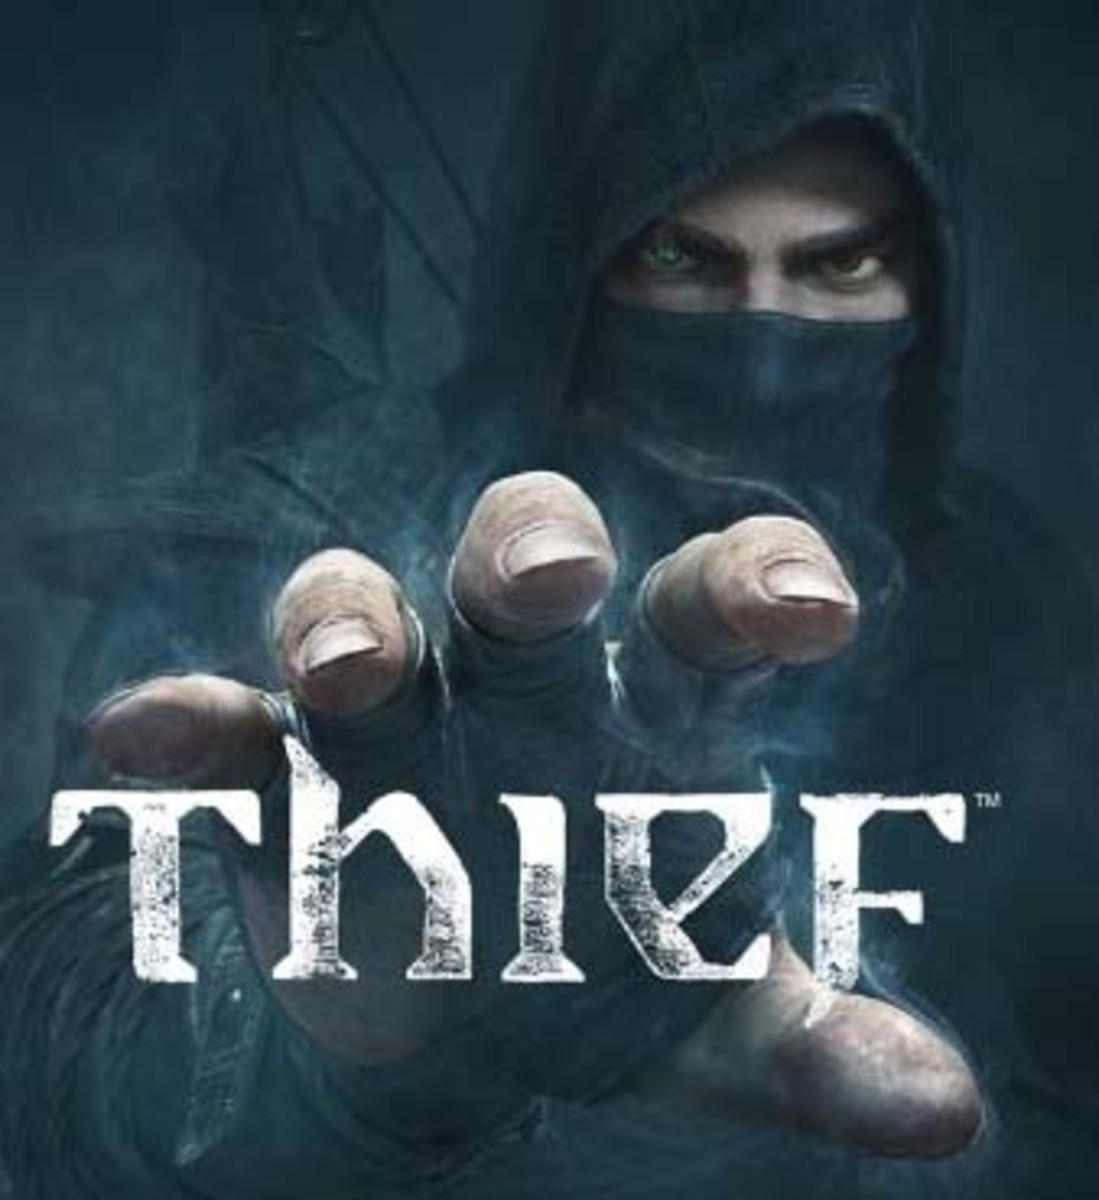 Thief Chapter 1 Lockdown Walkthrough